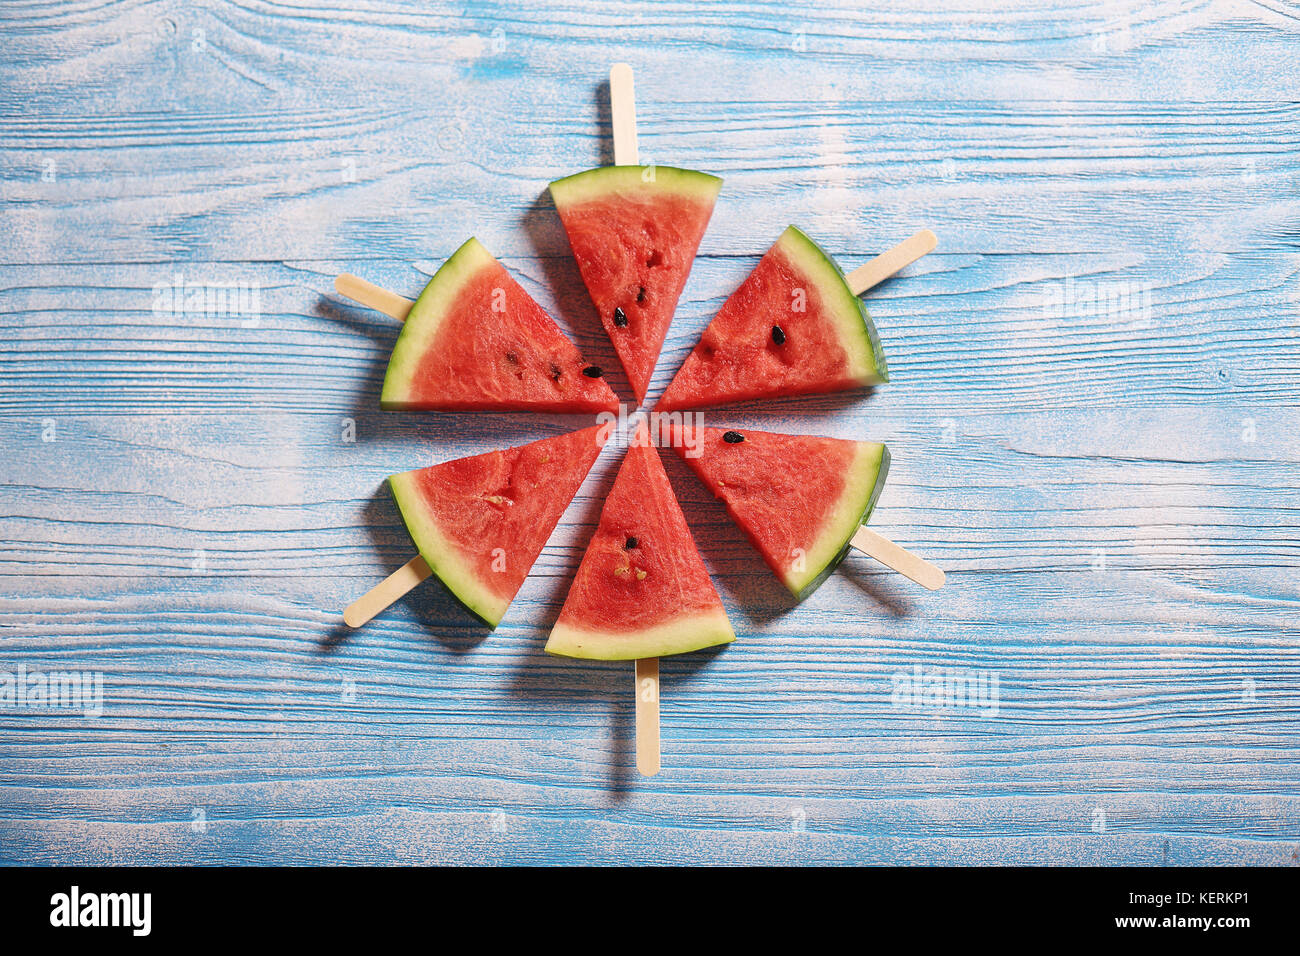 Slices of juicy red watermelon on a wooden background - Stock Image